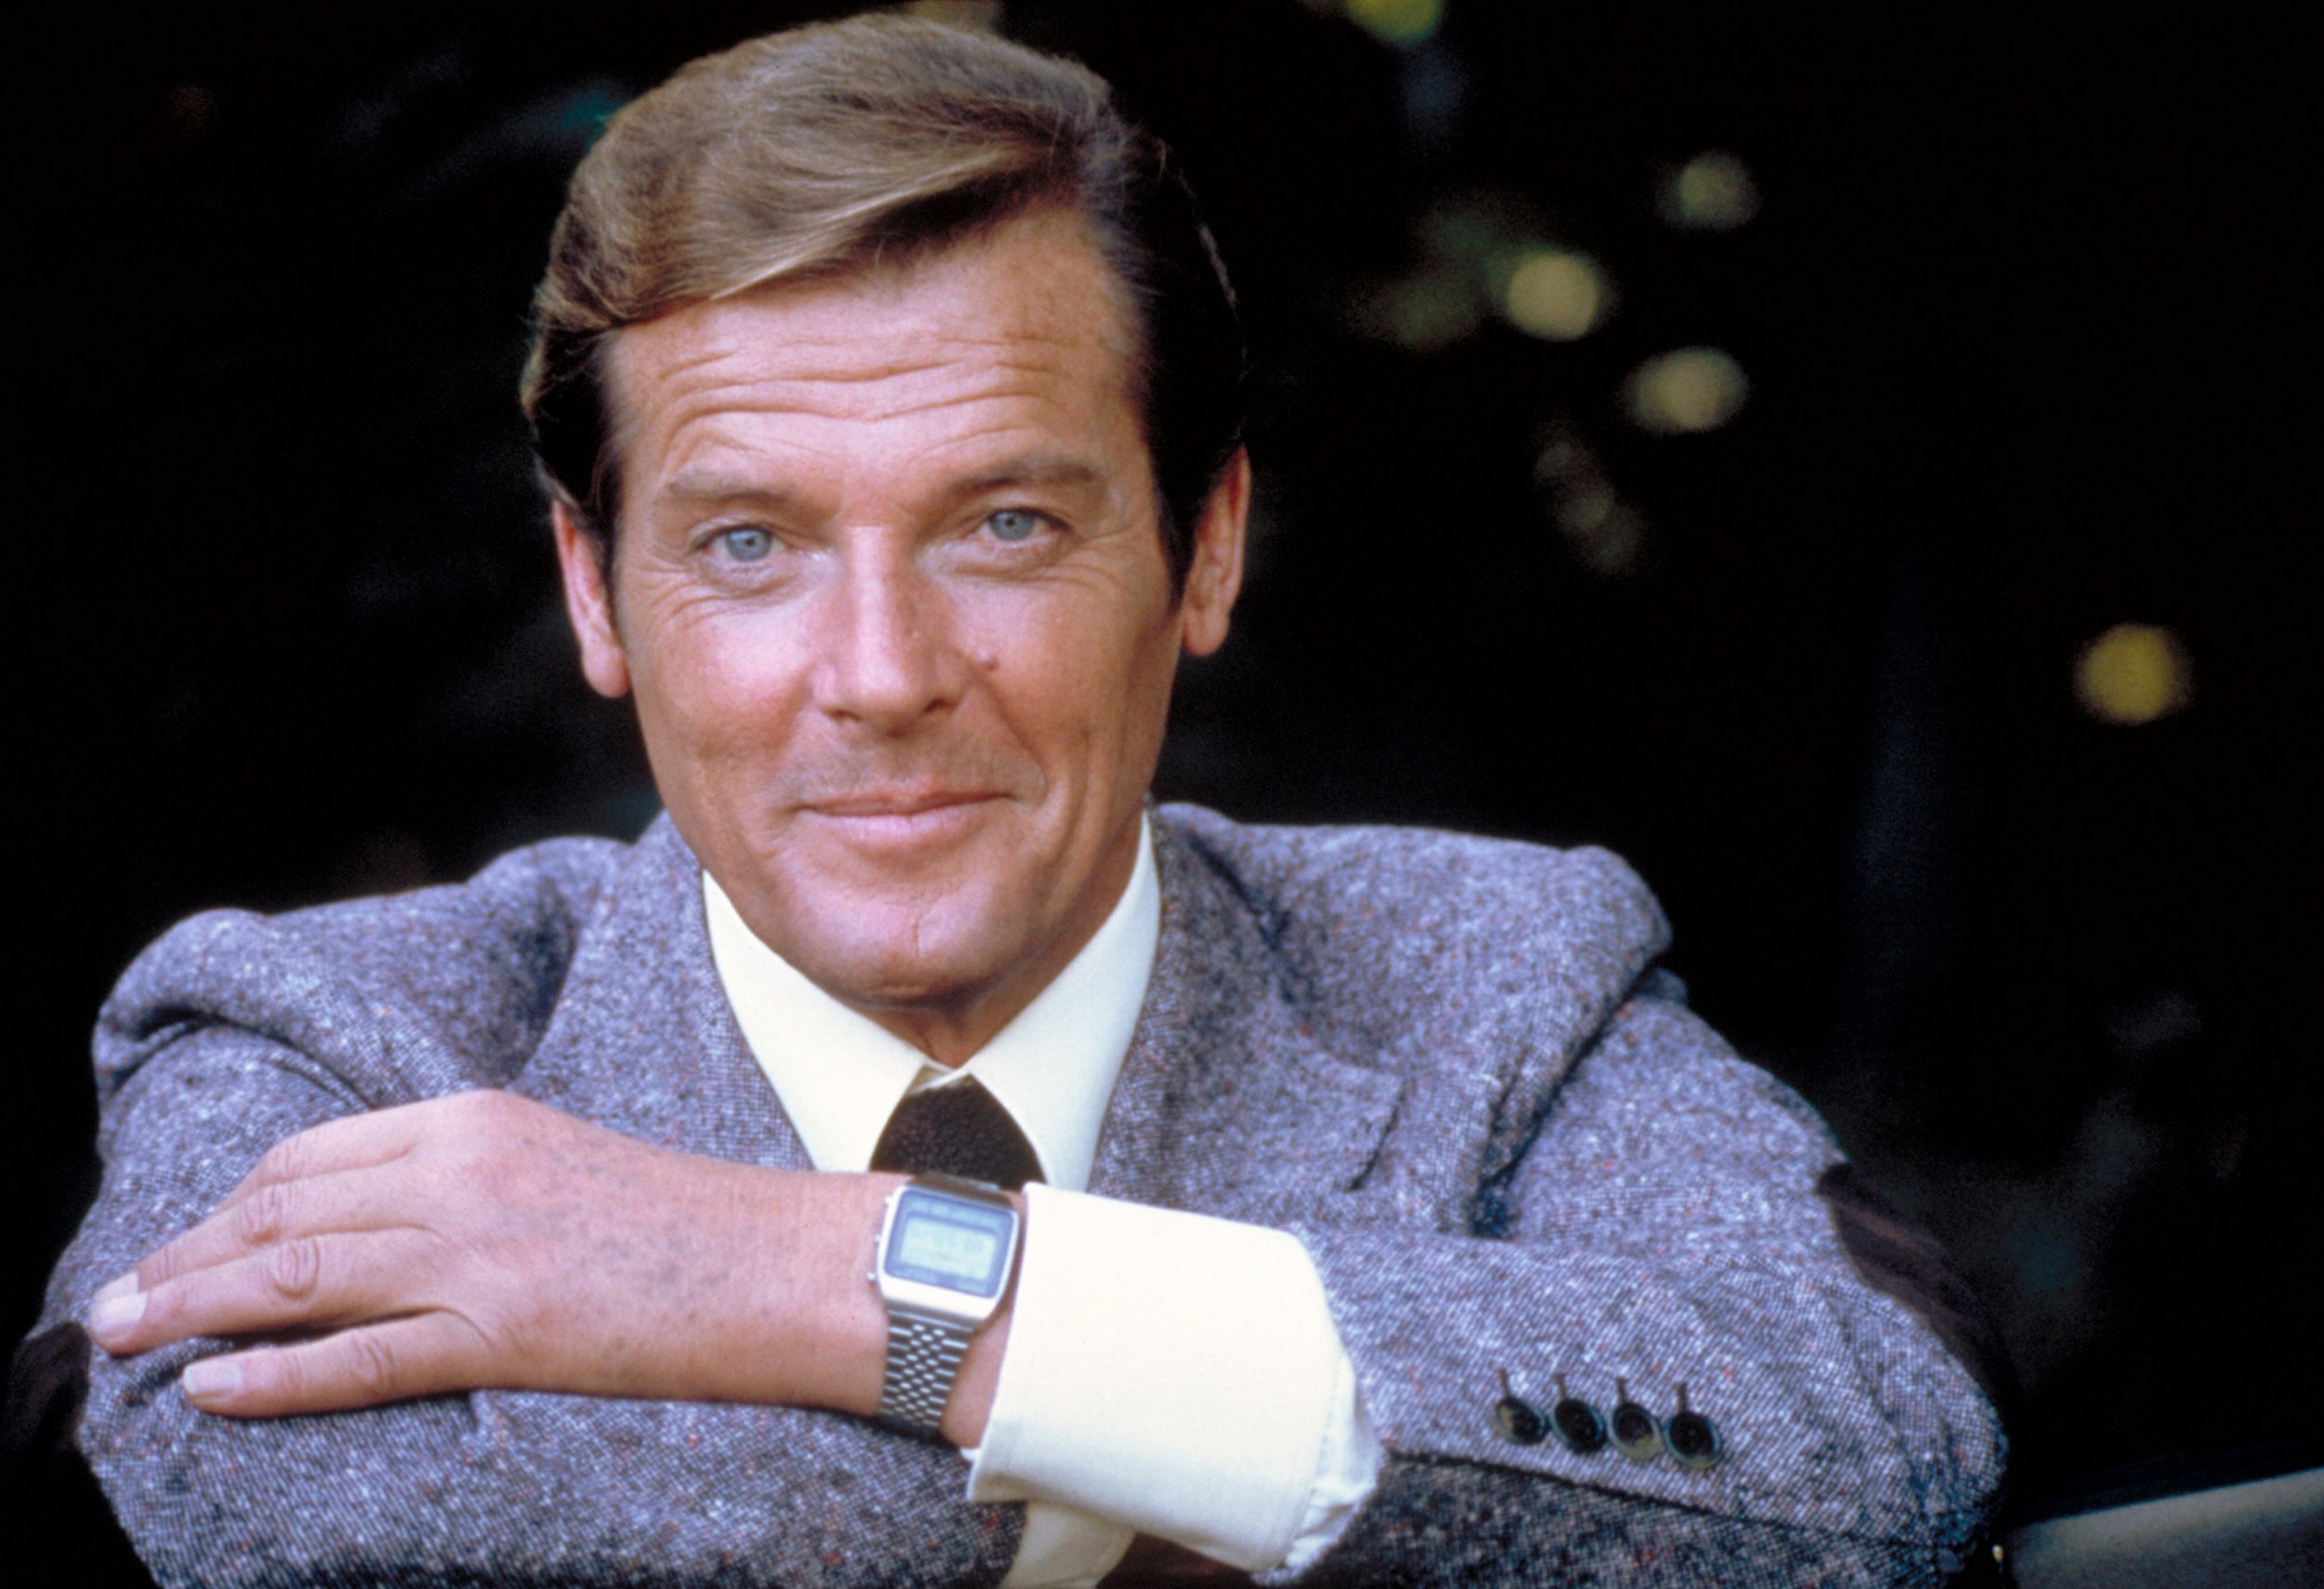 From Daniel Craig to Britt Ekland: James Bond actors and Bond girls pay tribute to Sir Roger Moore